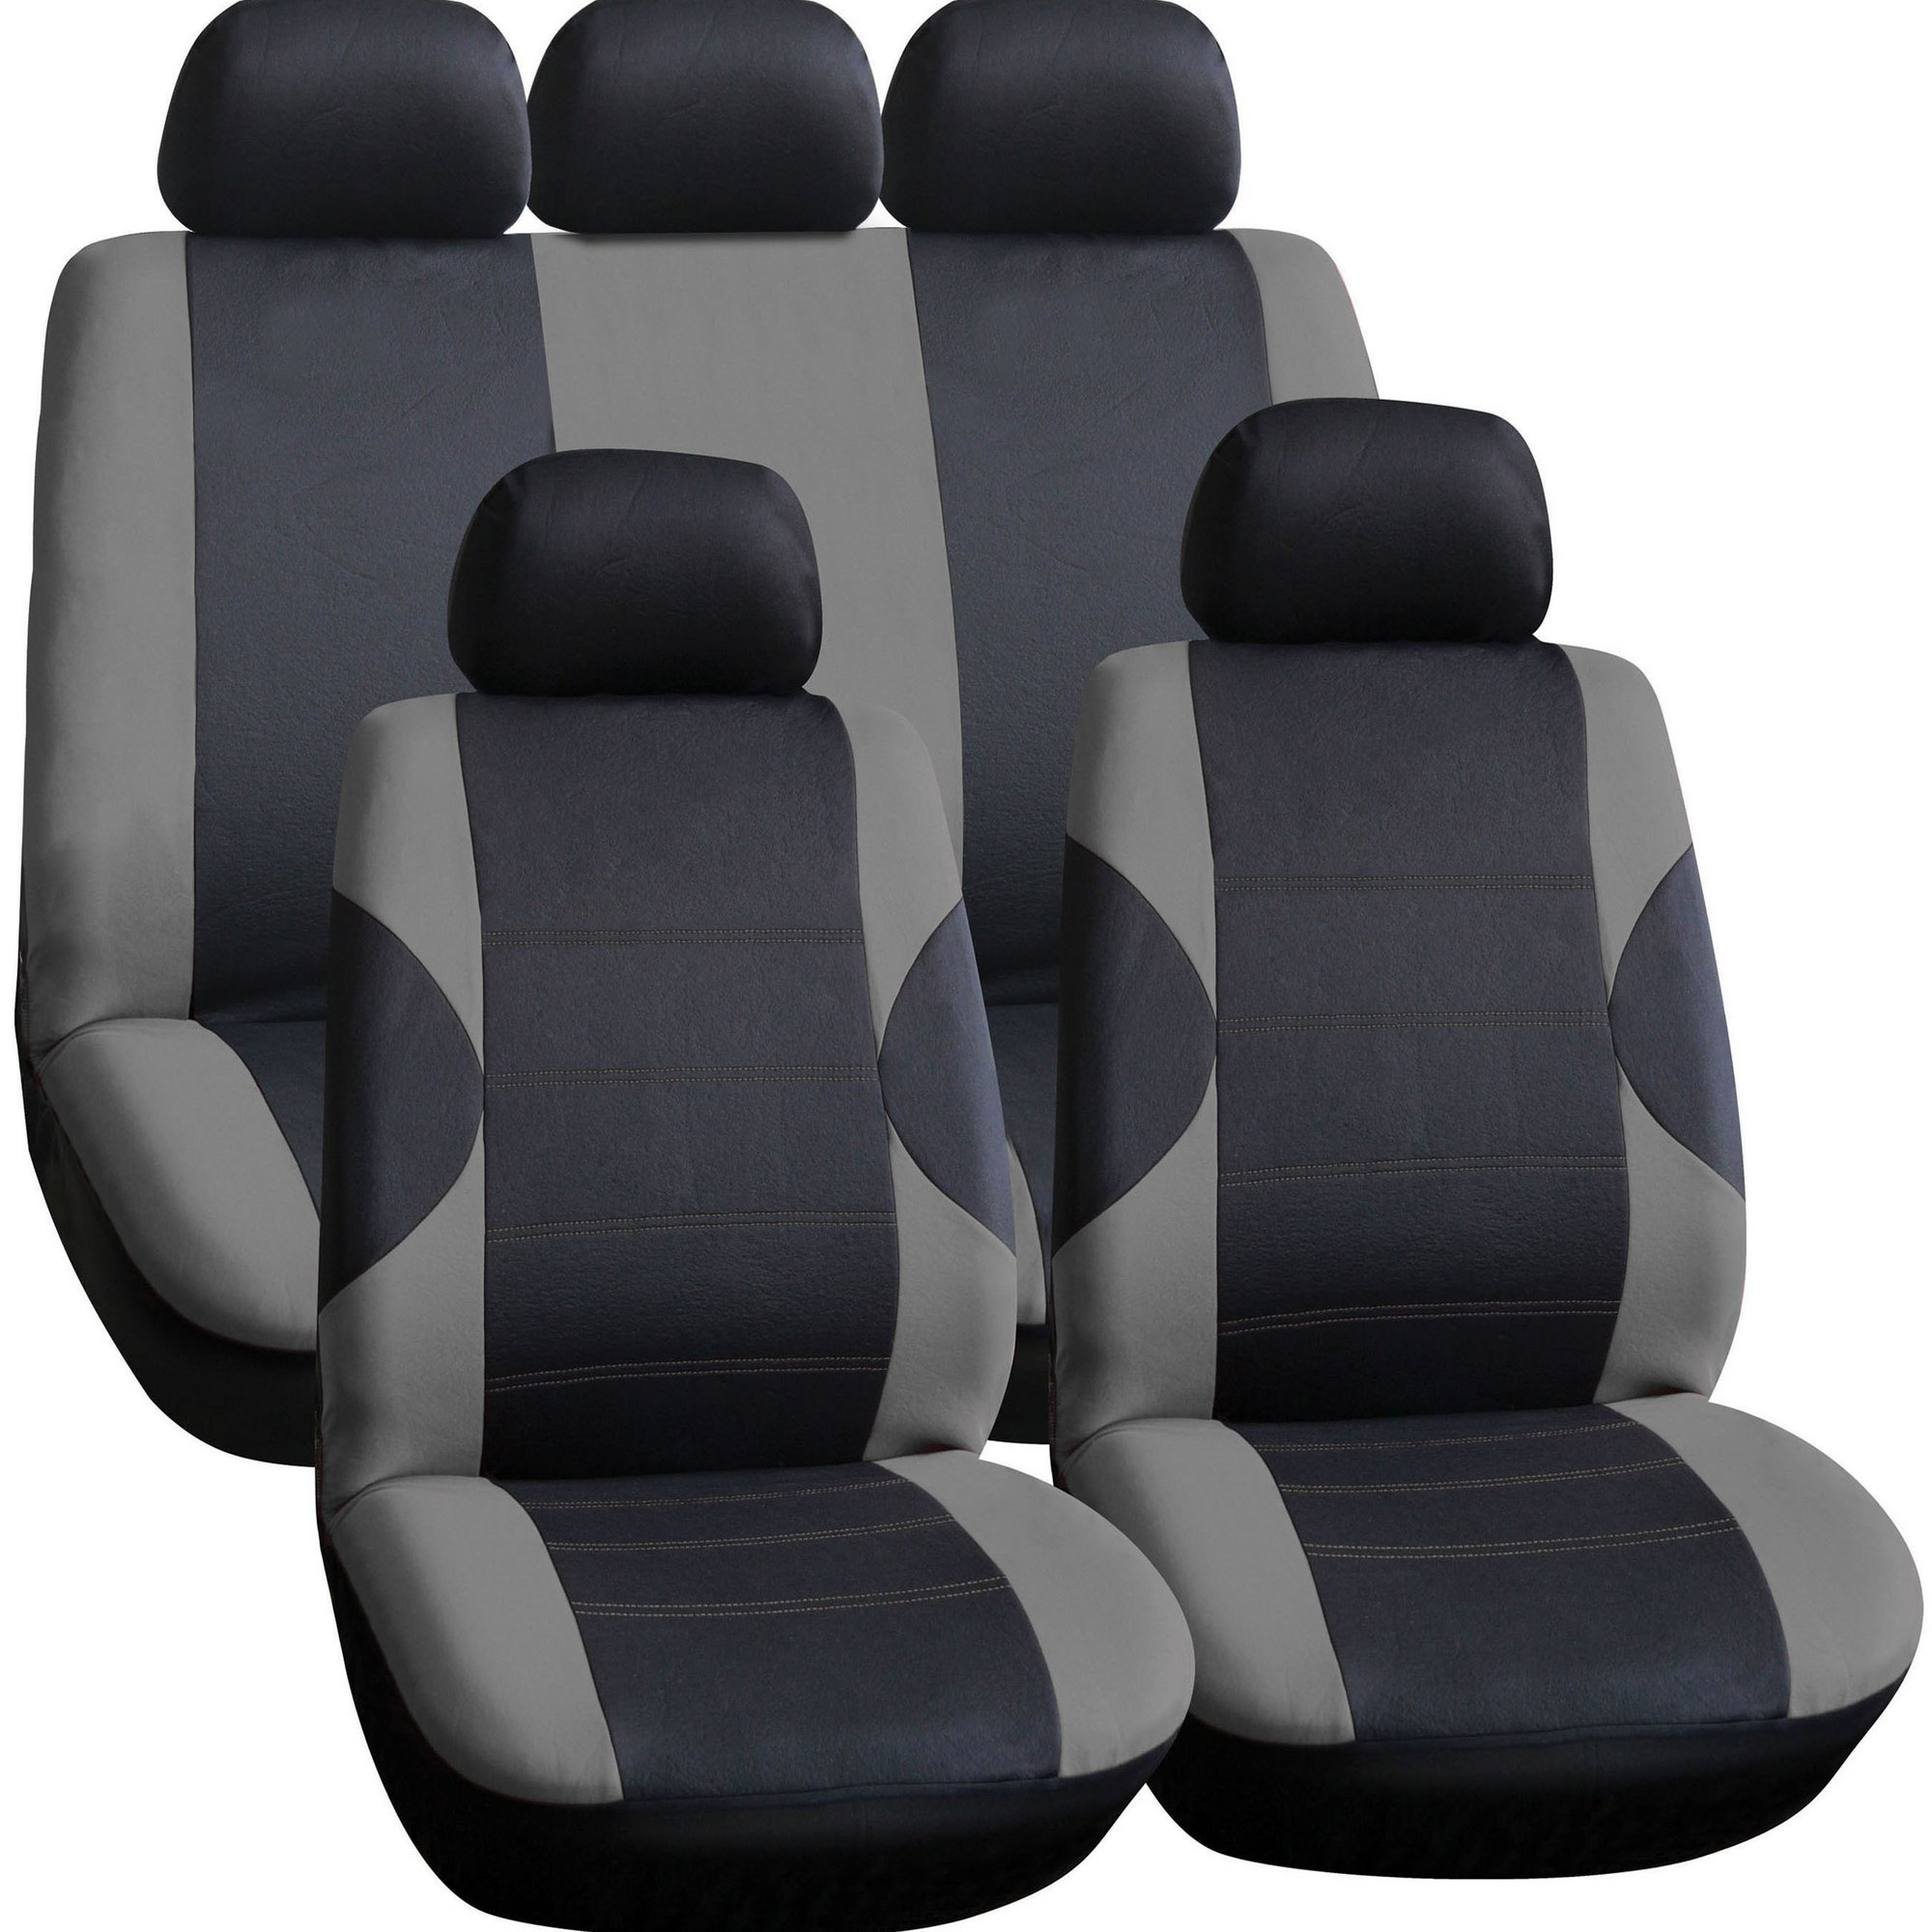 Image of Arkansas Seat Cover Set